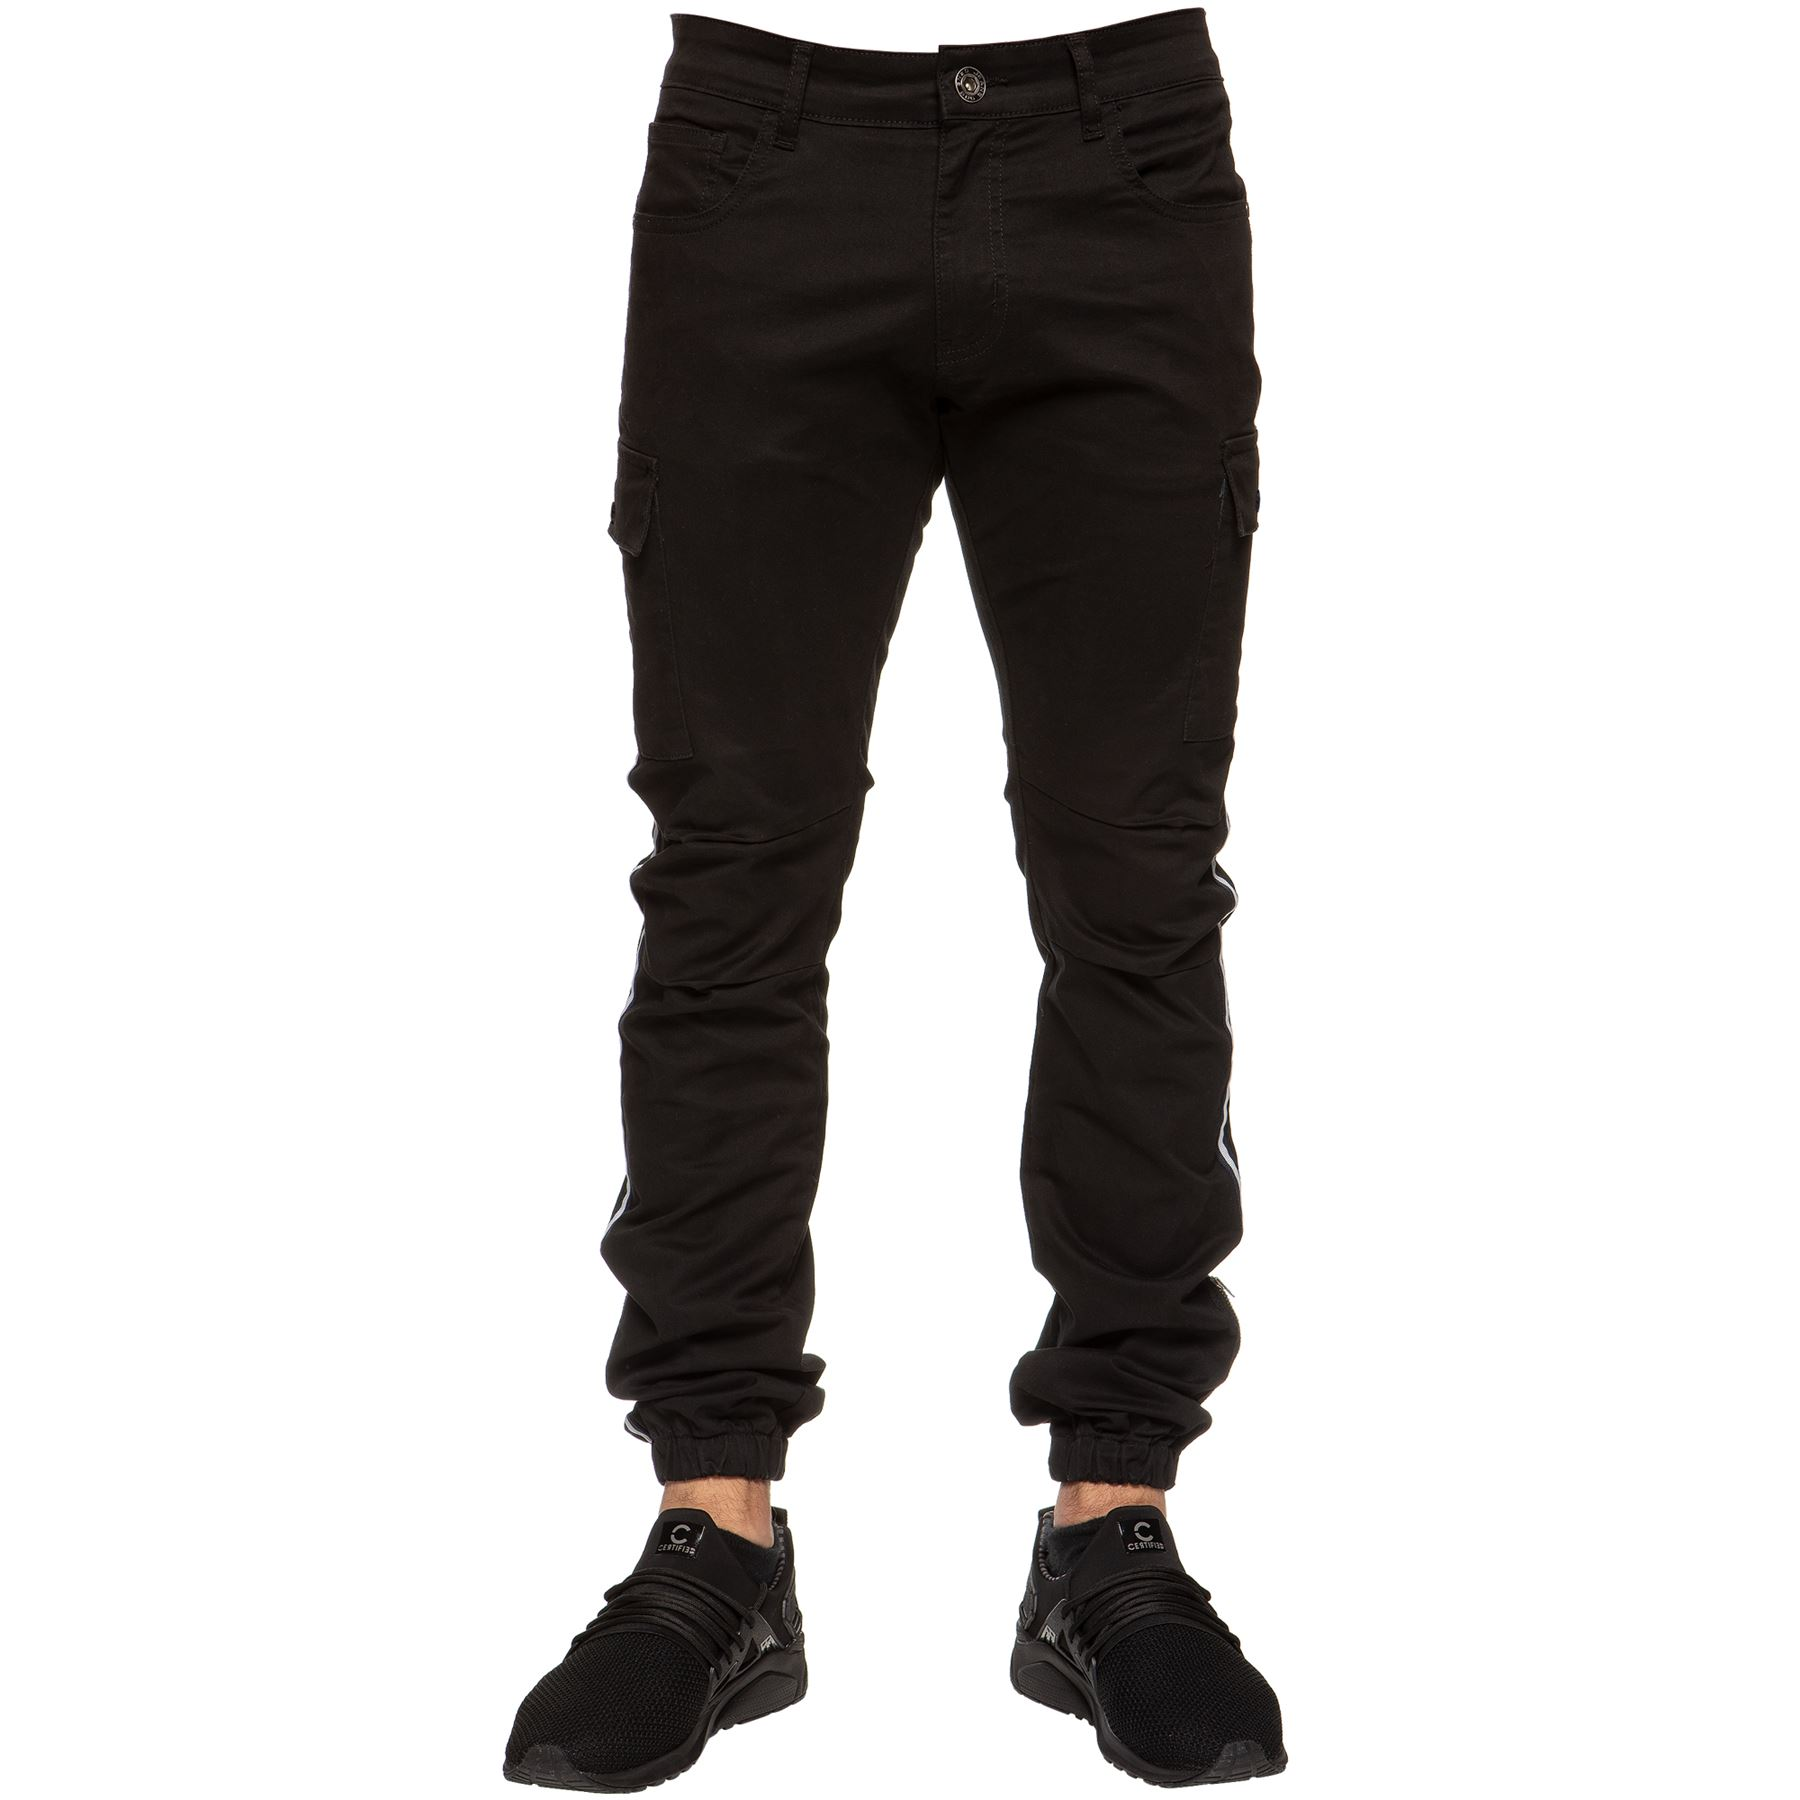 Enzo-Jeans-Mens-Combat-Trousers-Cargo-Chinos-Slim-Stretch-Cuffed-Joggers-Pants thumbnail 3